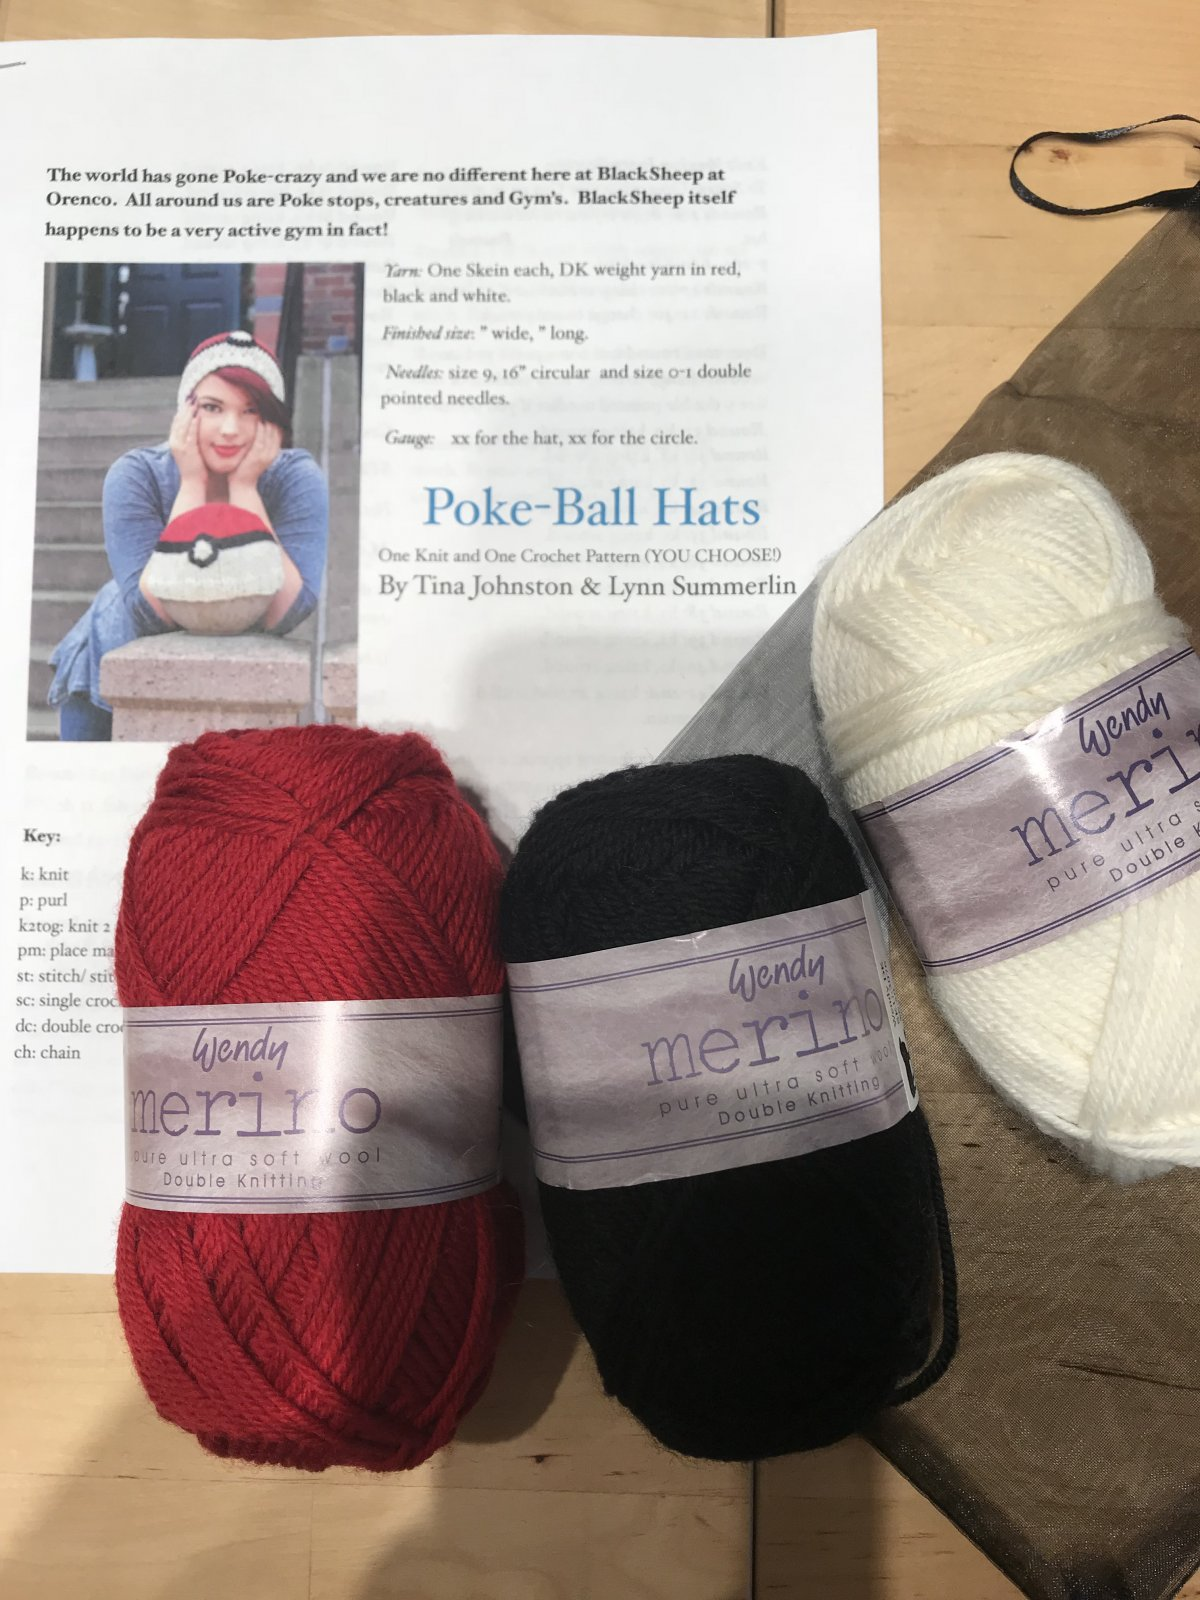 Pokeball Hat Kit